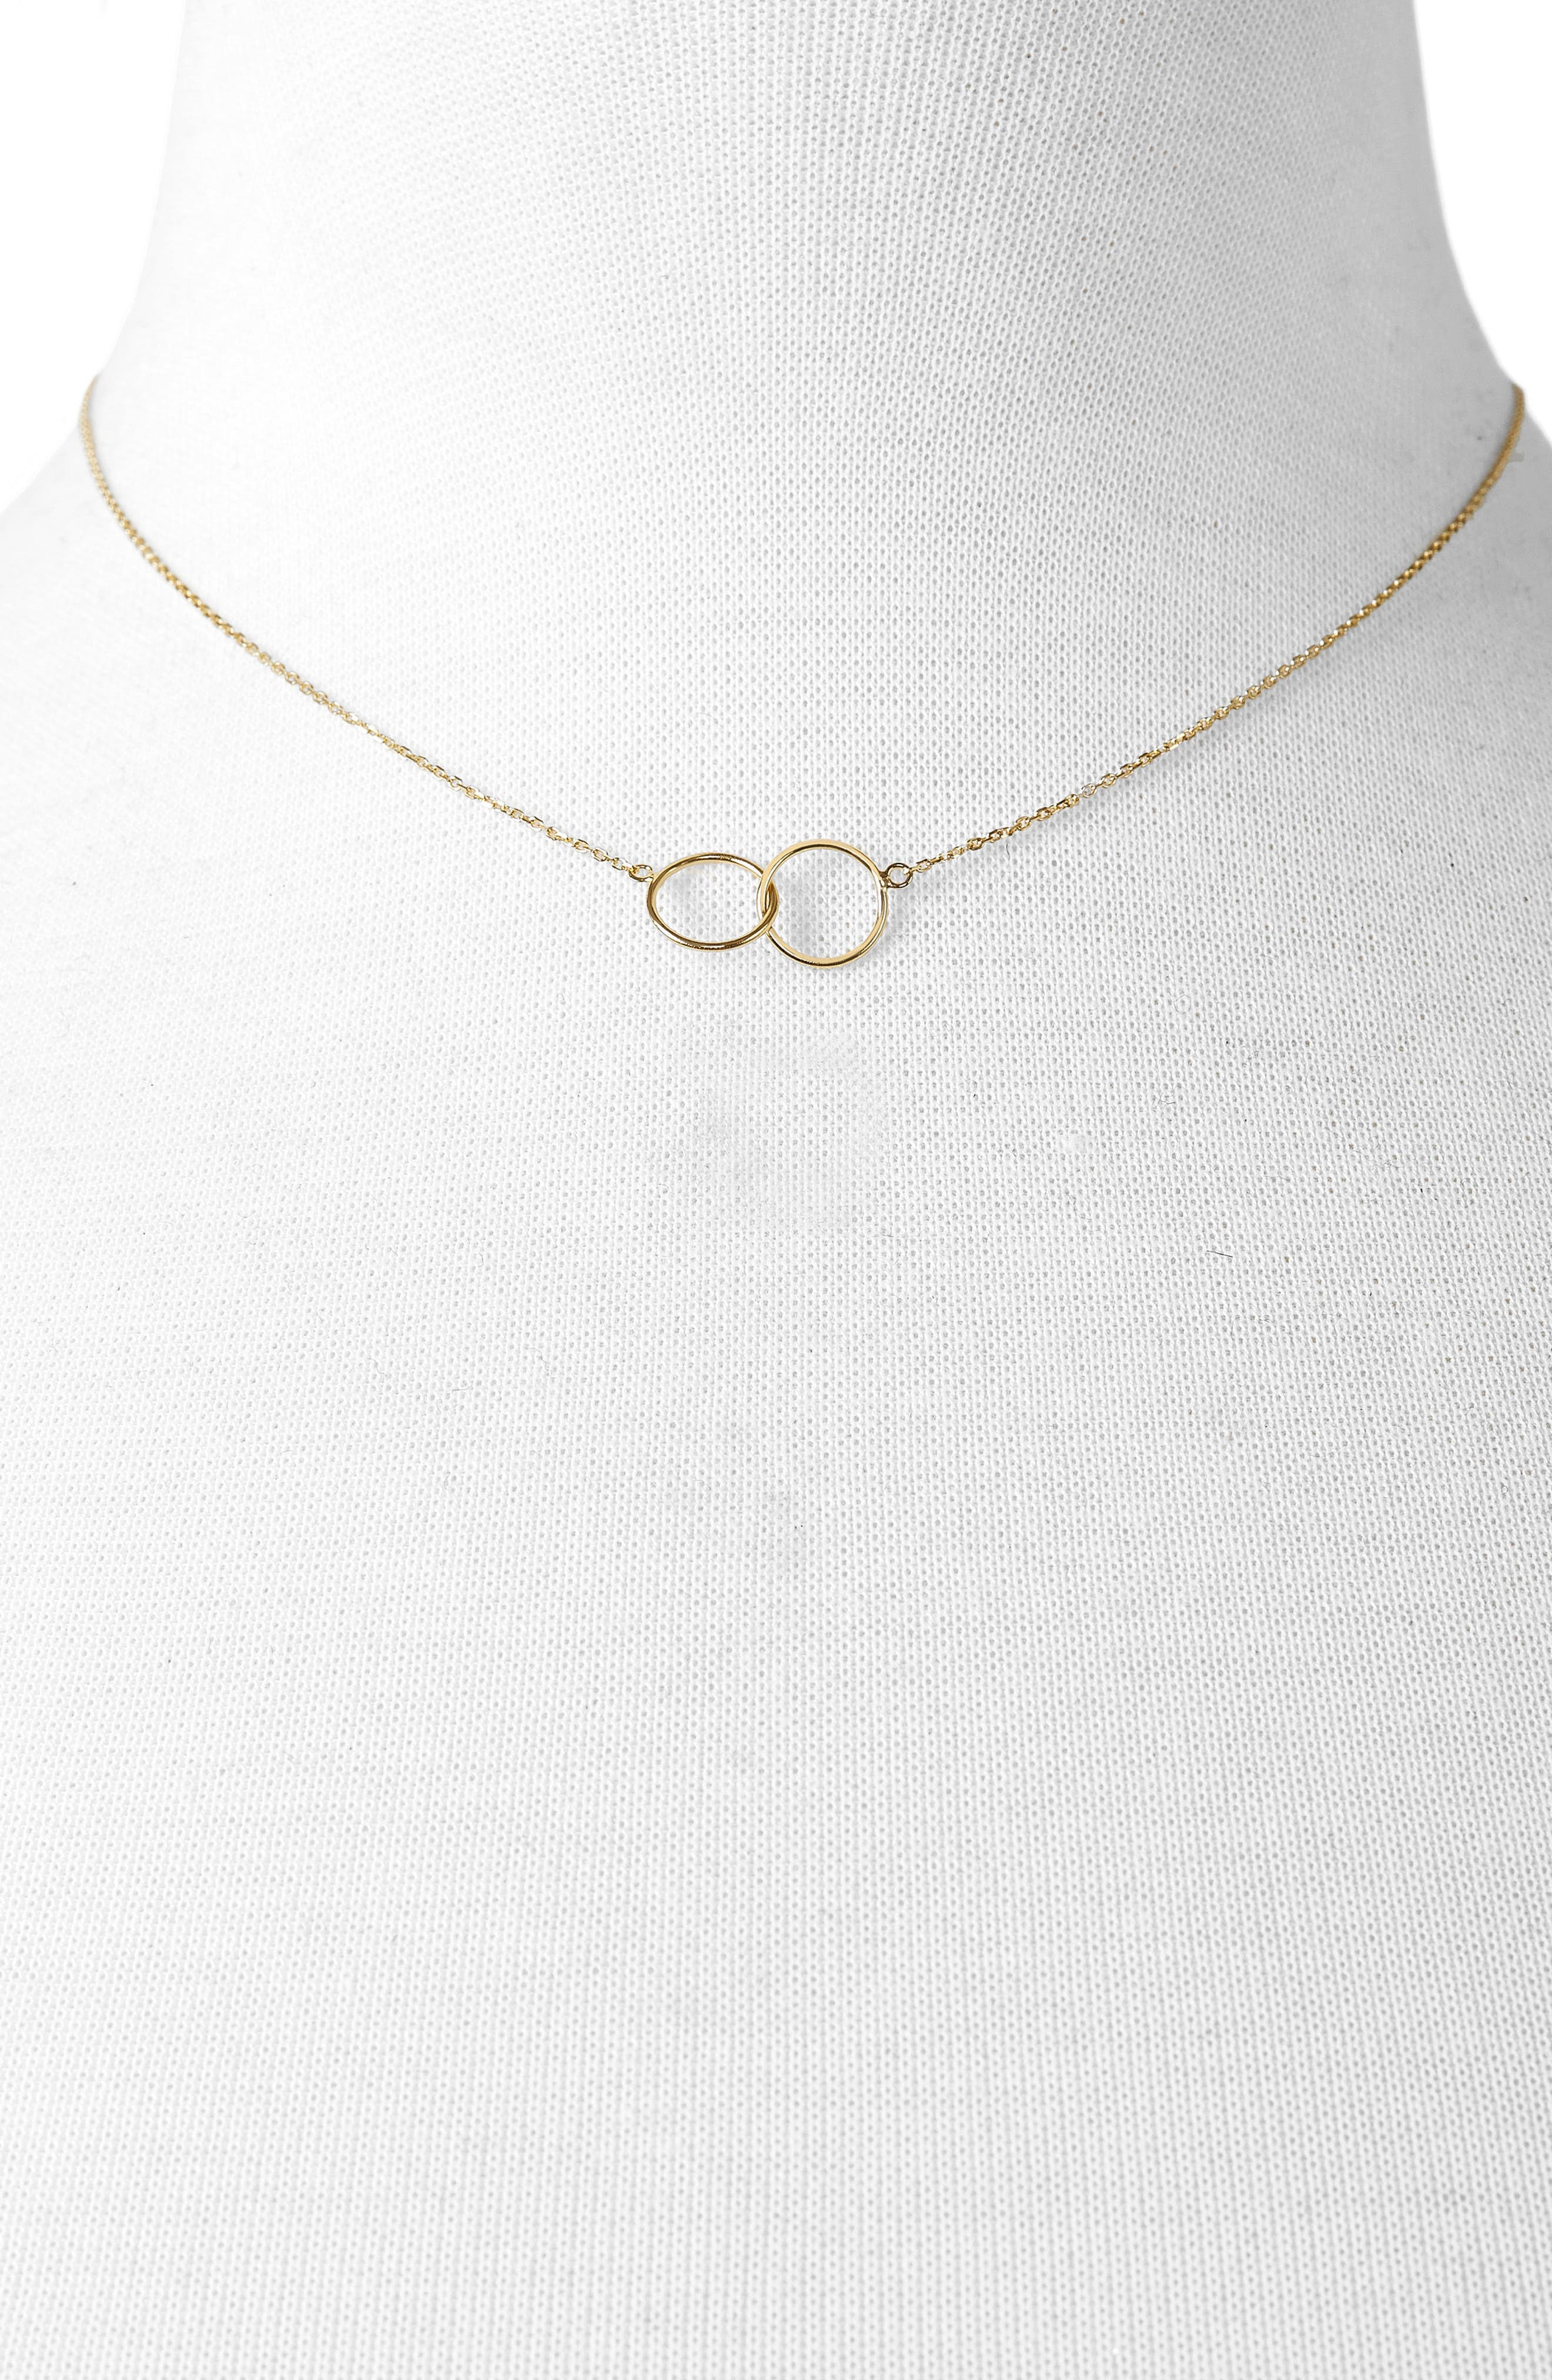 Connesso Everyday Fine Pendant Necklace,                             Alternate thumbnail 2, color,                             Gold